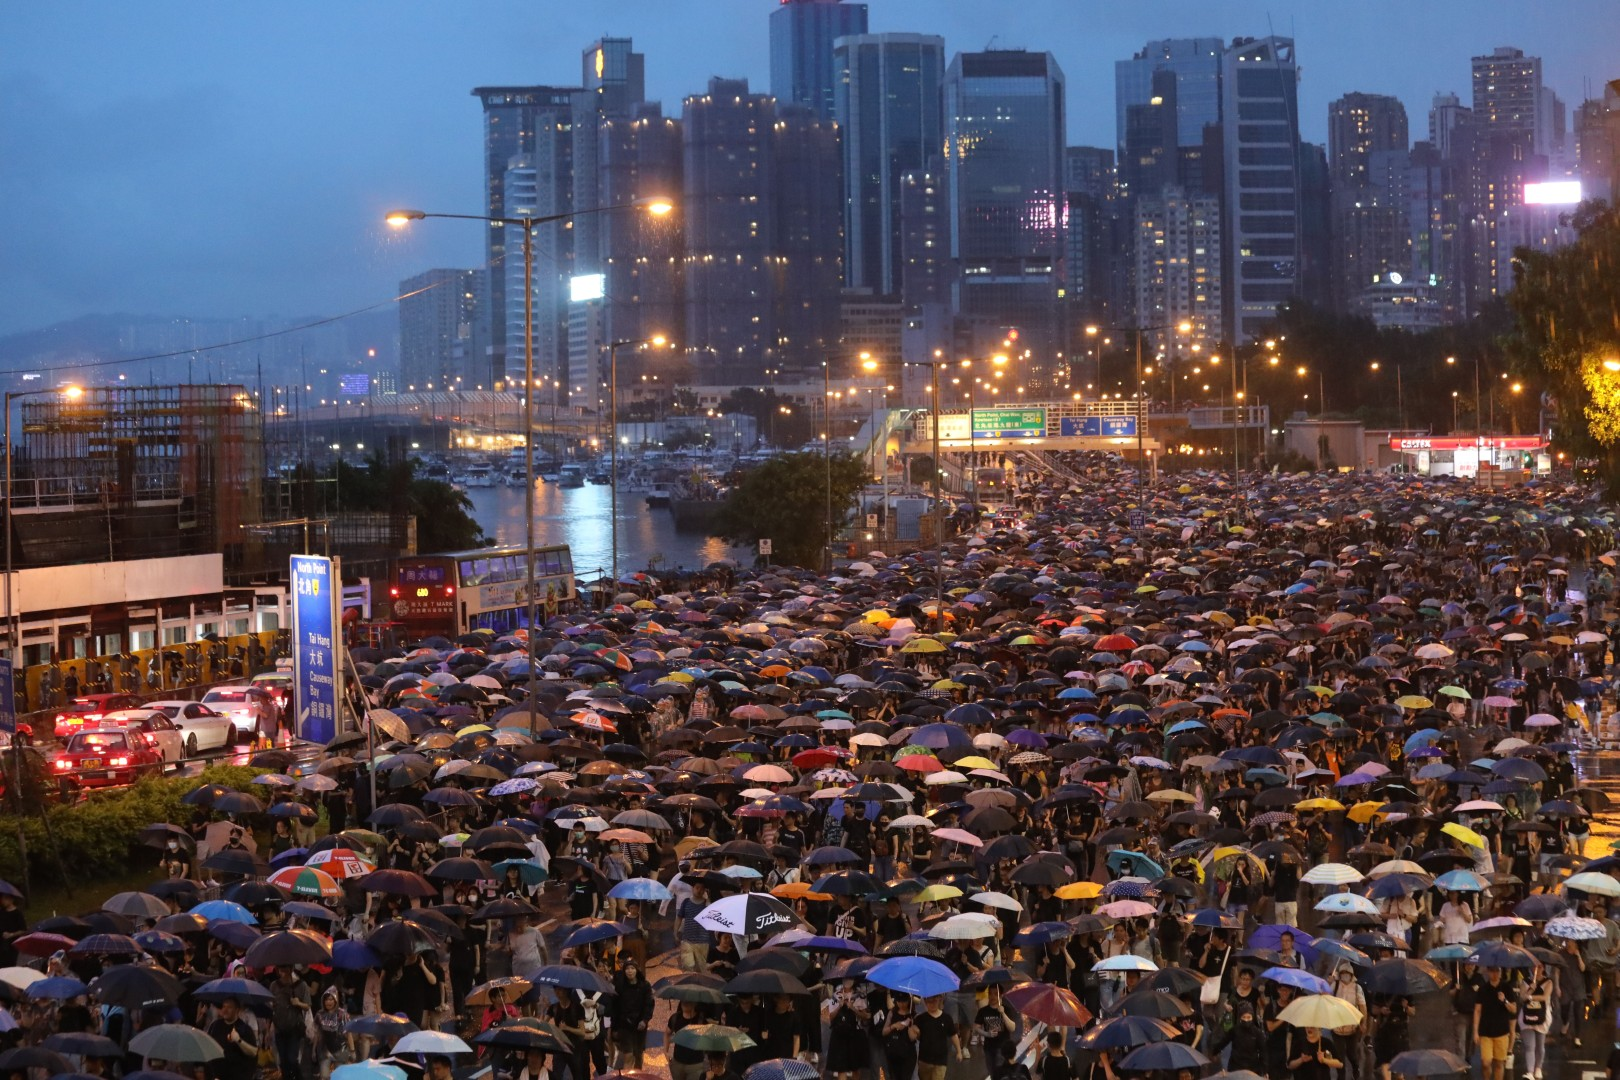 Hong Kong protesters defy police ban, but demonstrations remain peaceful